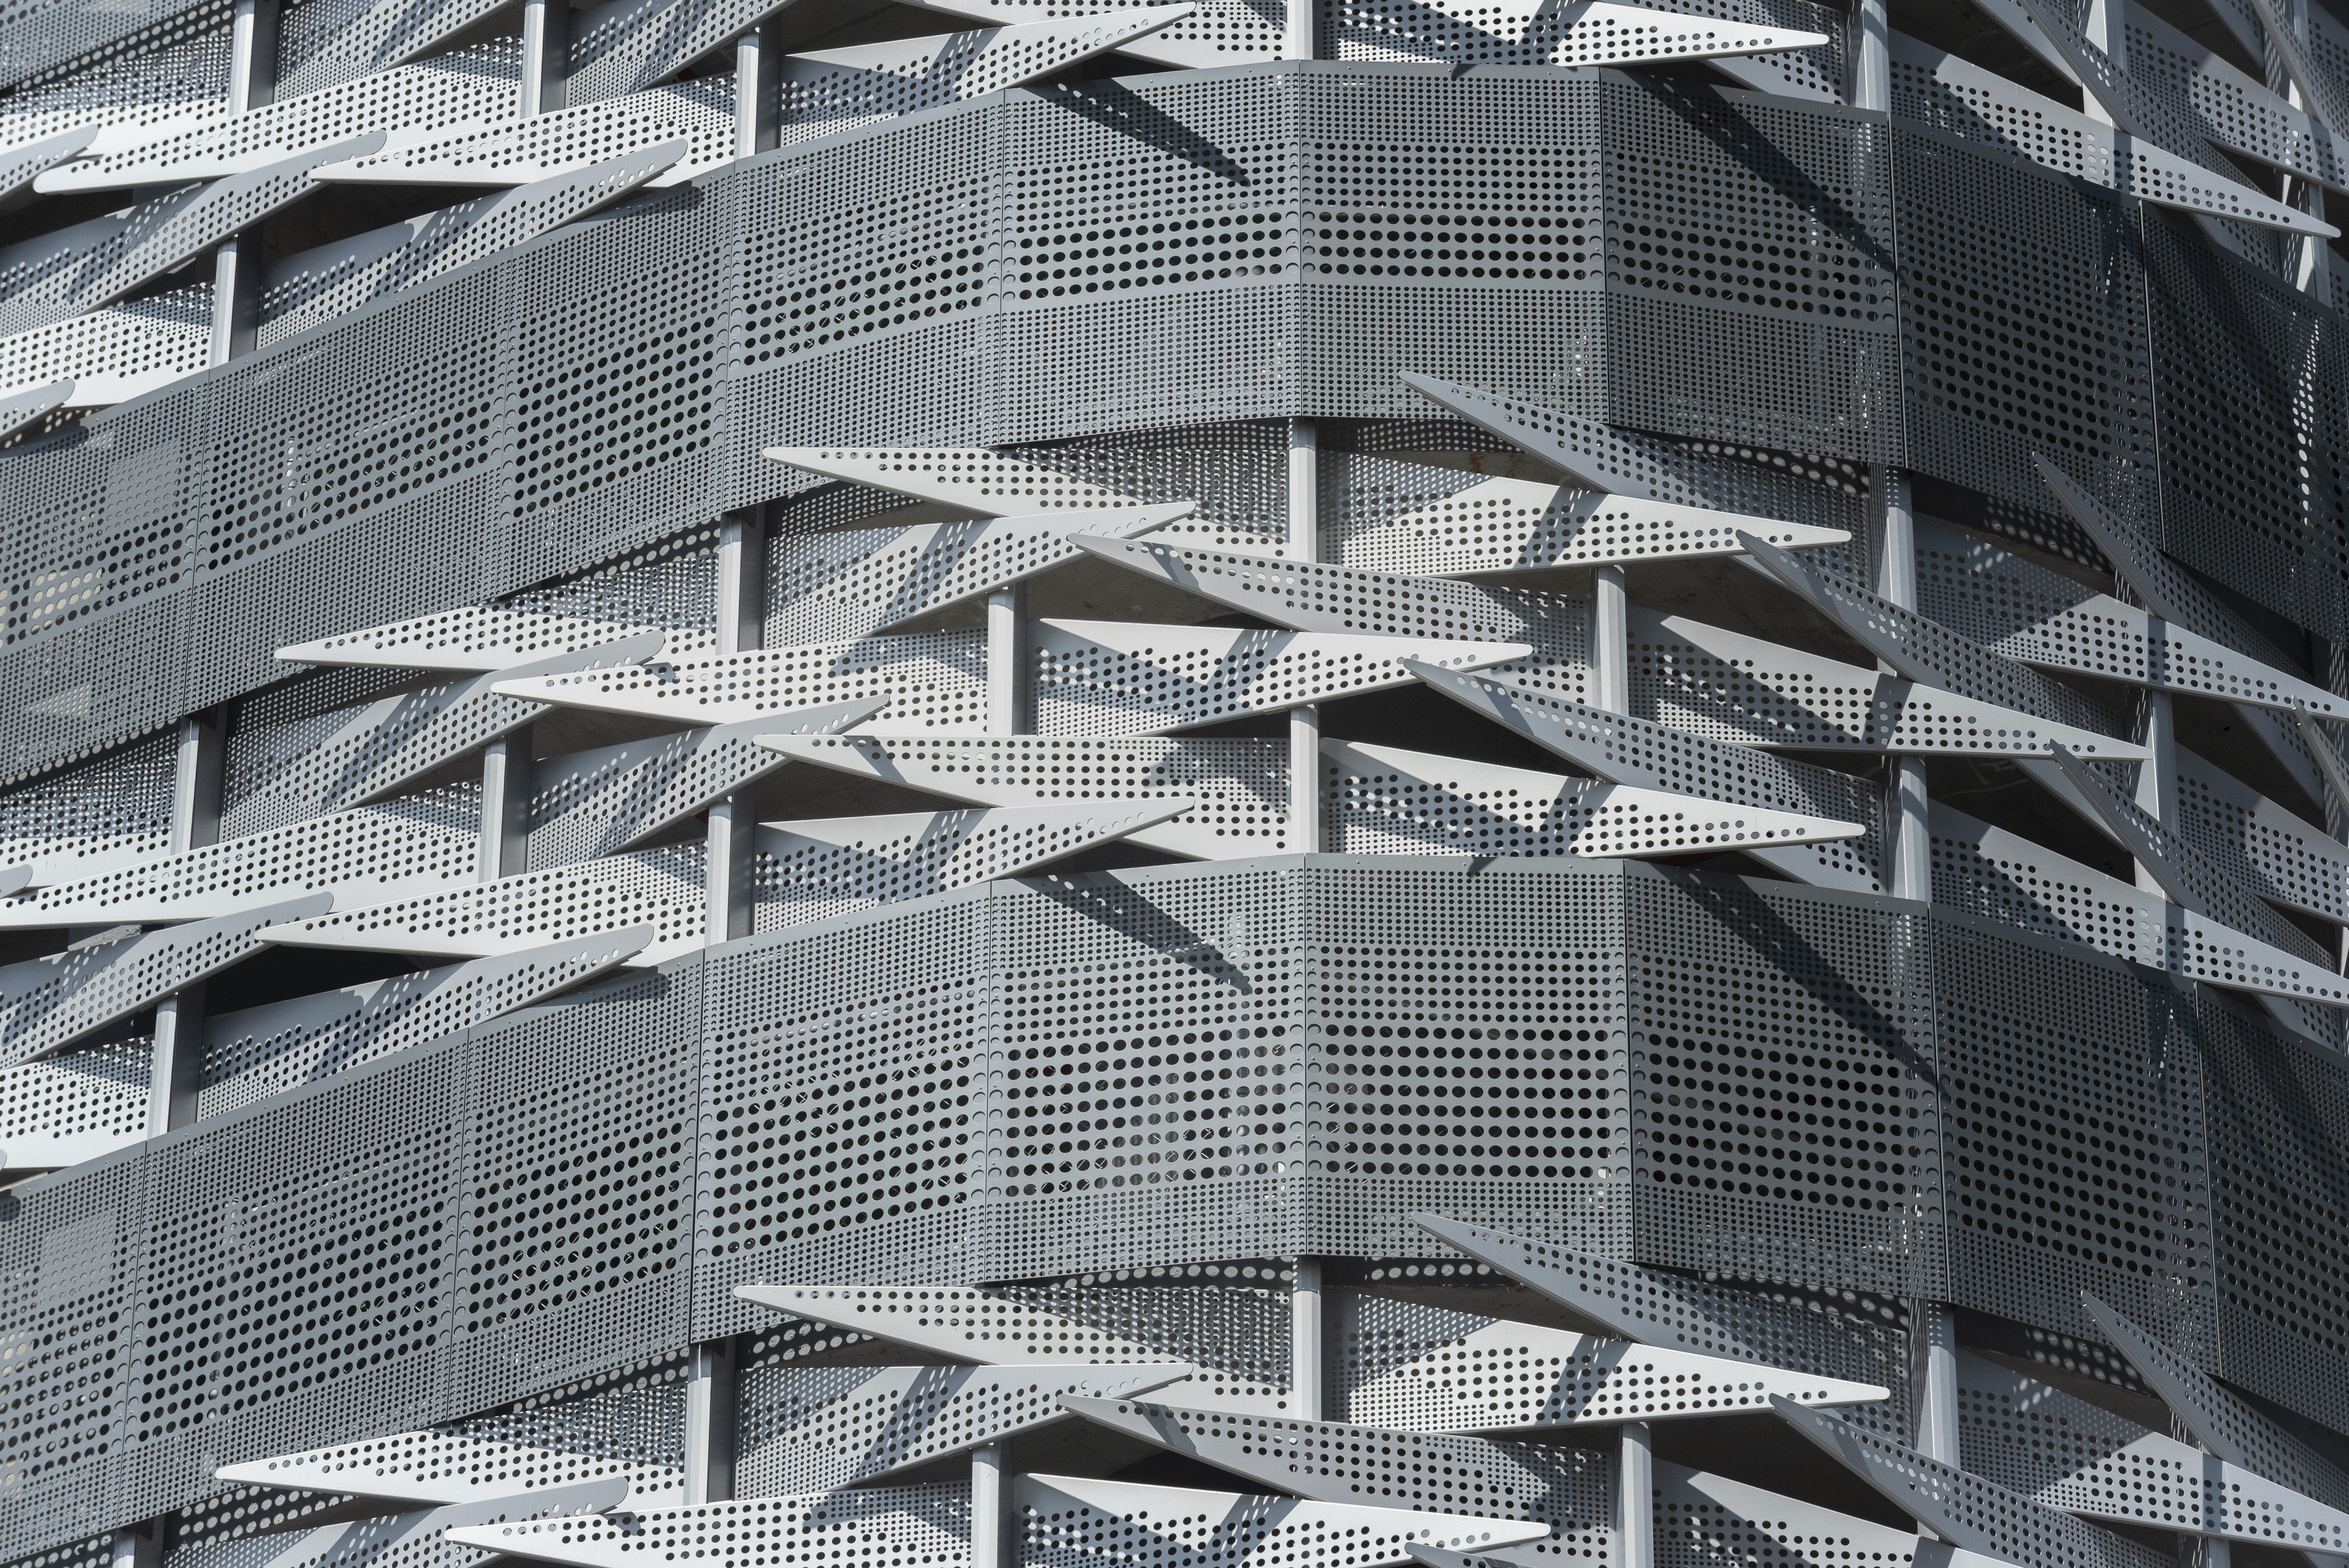 Closeup of the custom metal facade for the Brickell Flatiron Parking Garage, produced by Zahner.